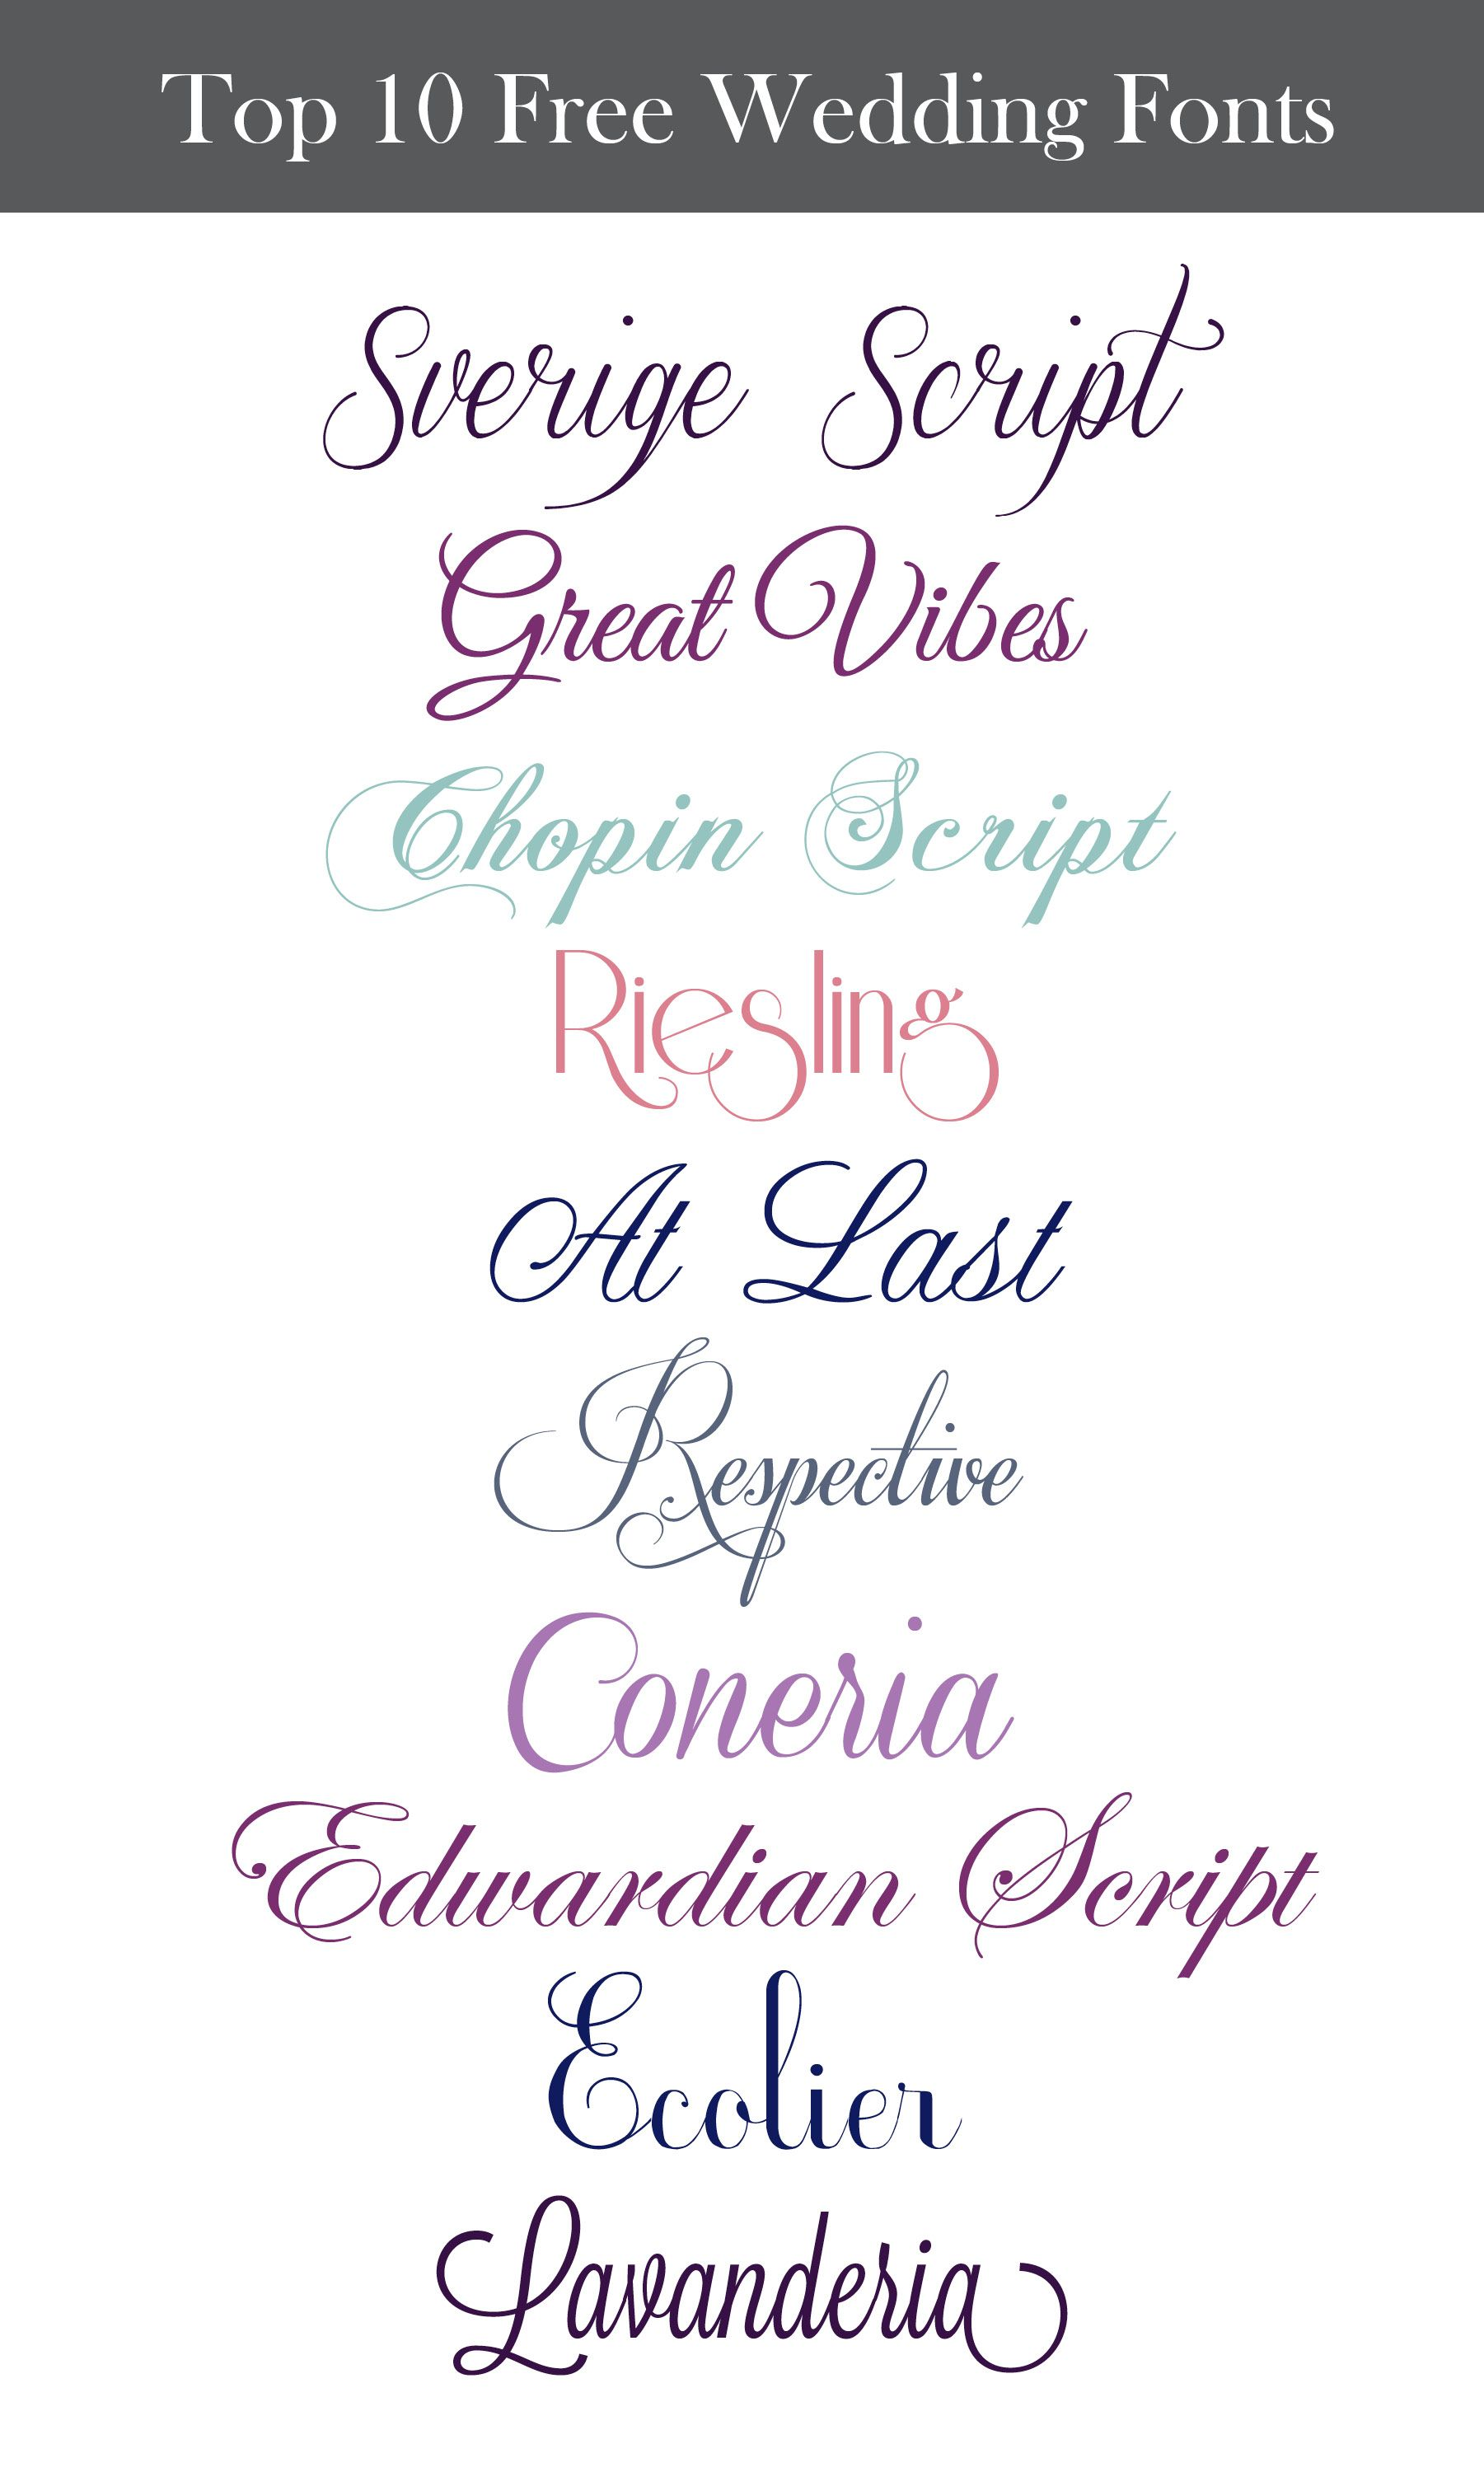 Inspiration Wednesday Free Wedding Fonts